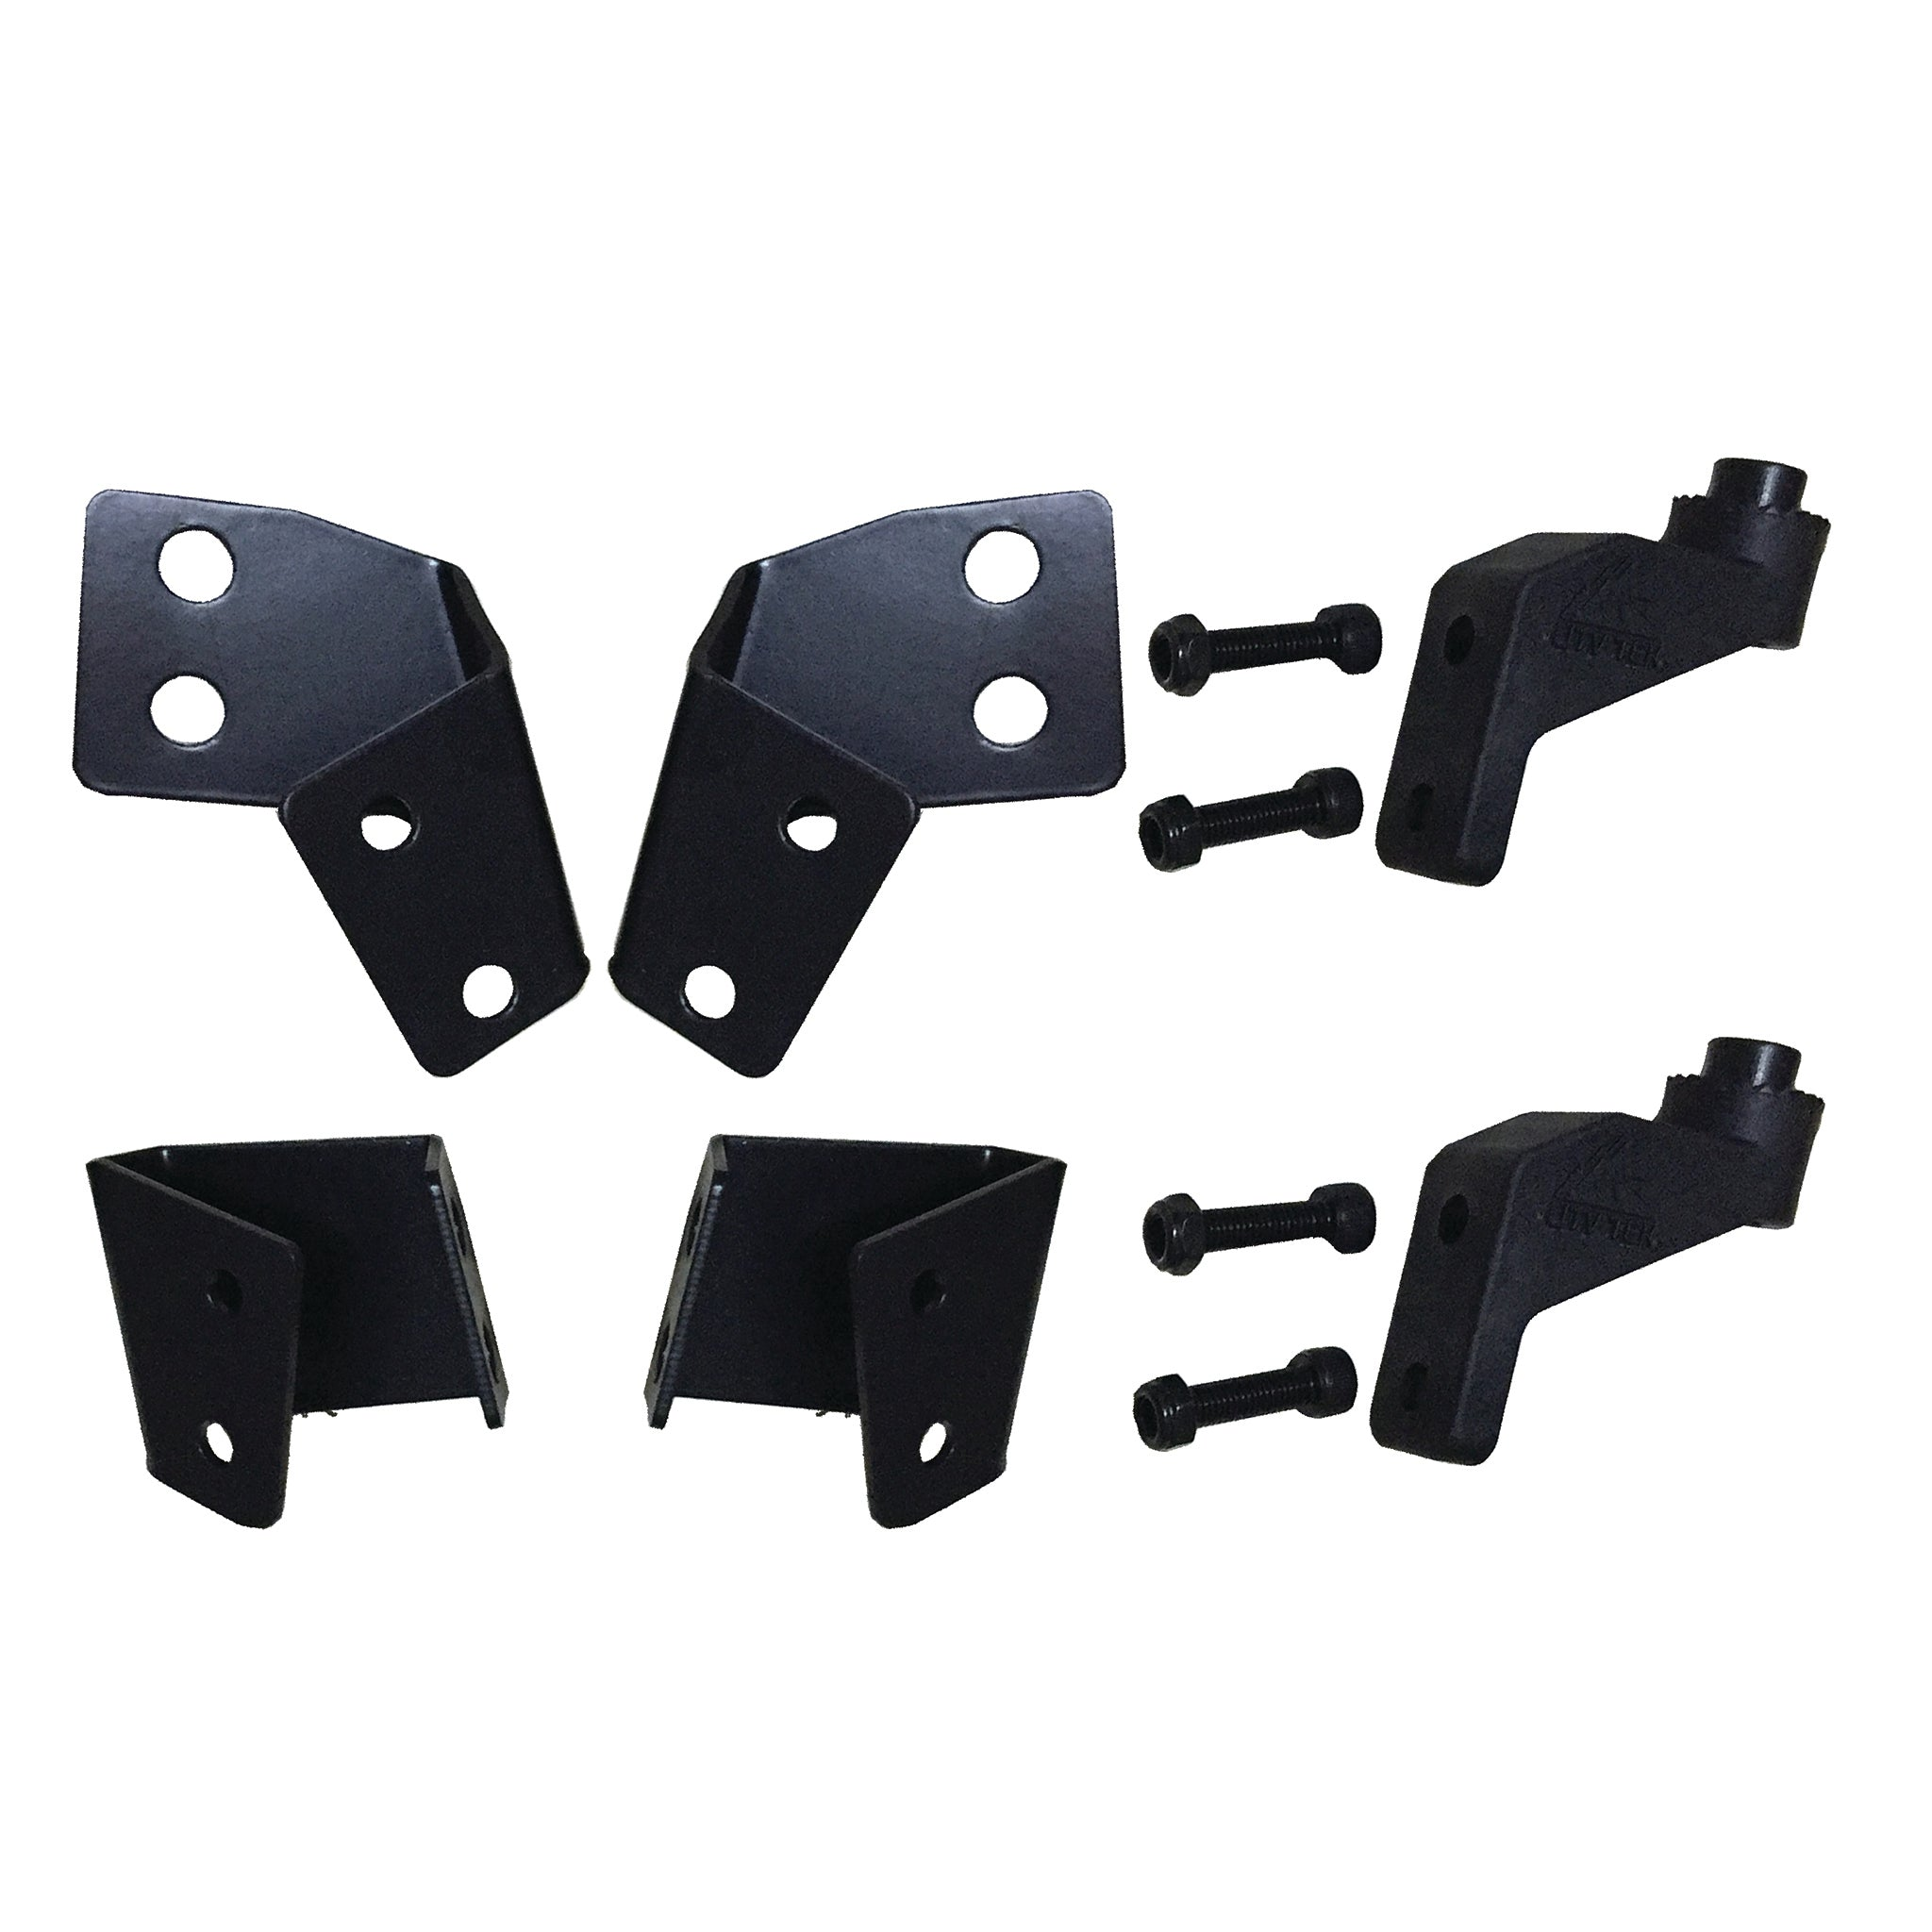 Elite Series Side Mirror Adapter - for Polaris® RZR®, General®, & Ranger®